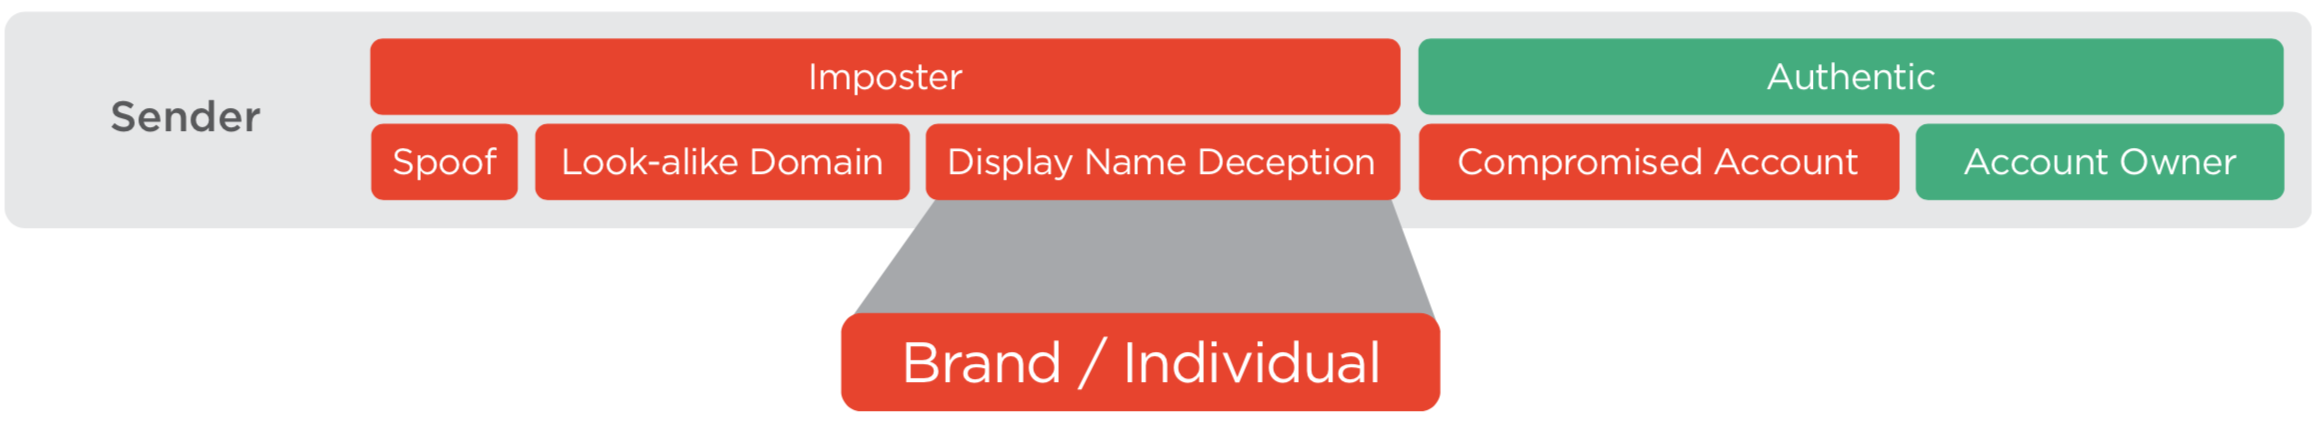 Q1-display-name-deception-2019